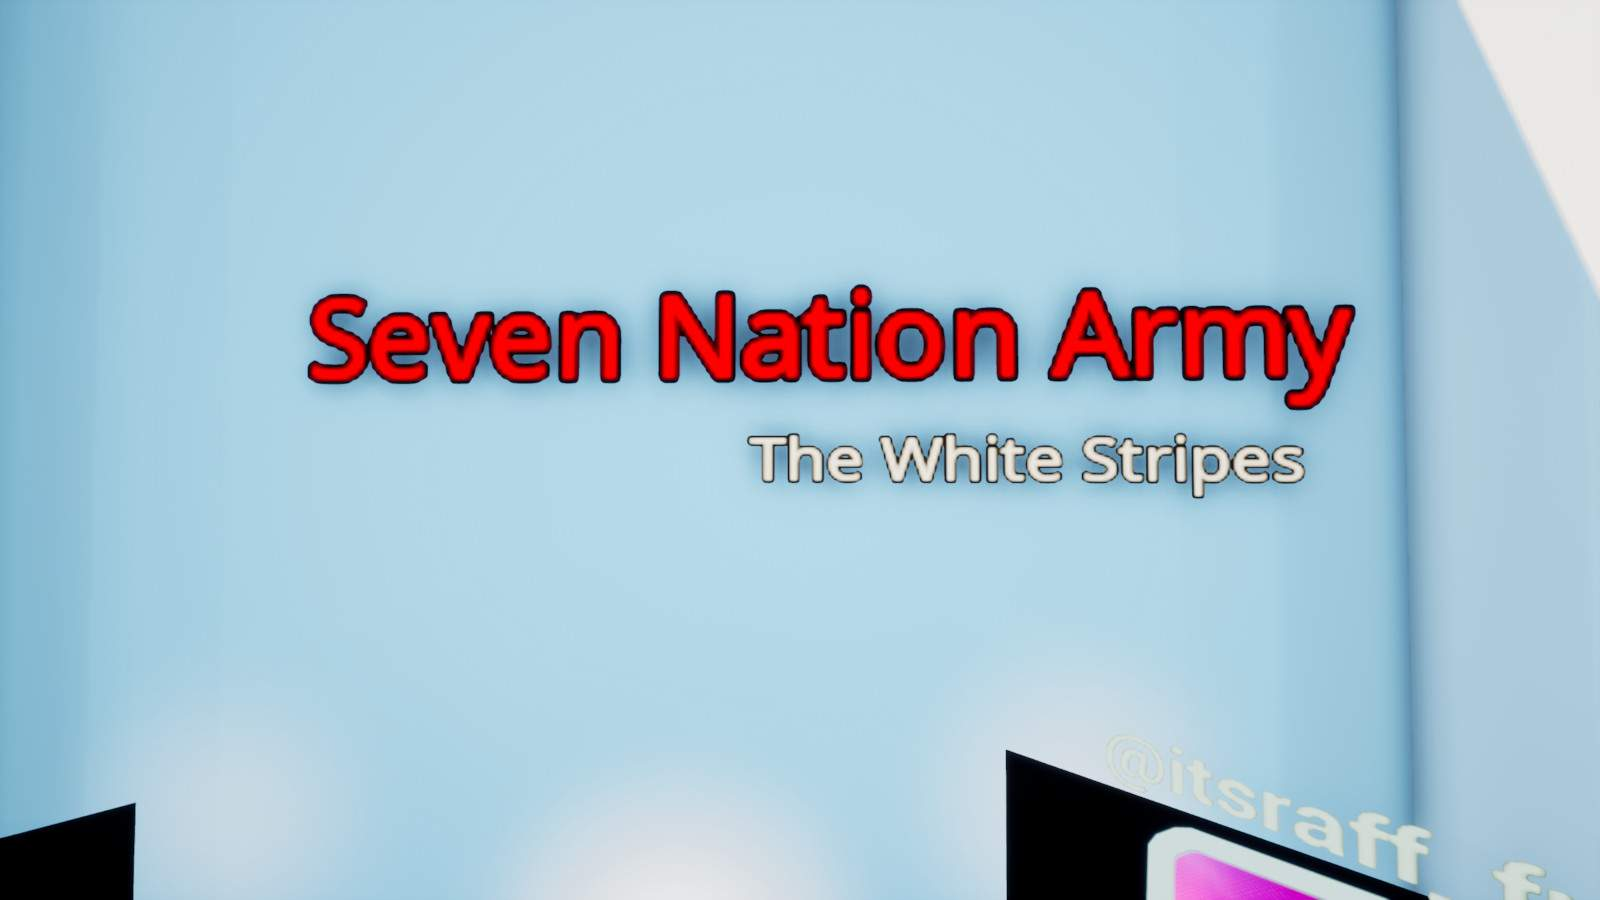 SEVEN NATION ARMY MUSIC BLOCKS